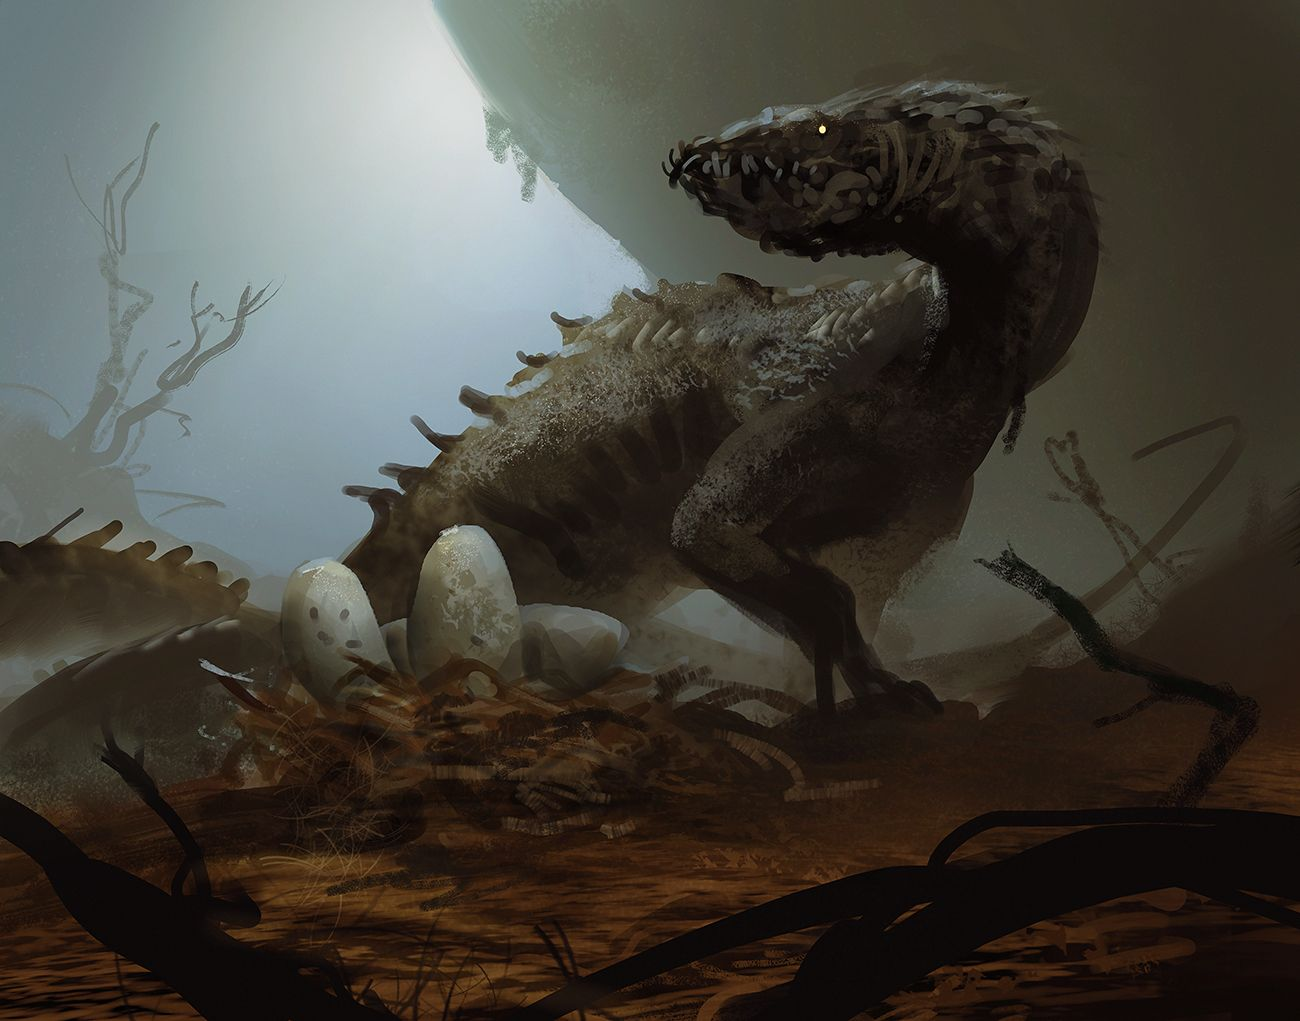 Brent S Sketchblog Art Pinterest Creature Design Fantasy